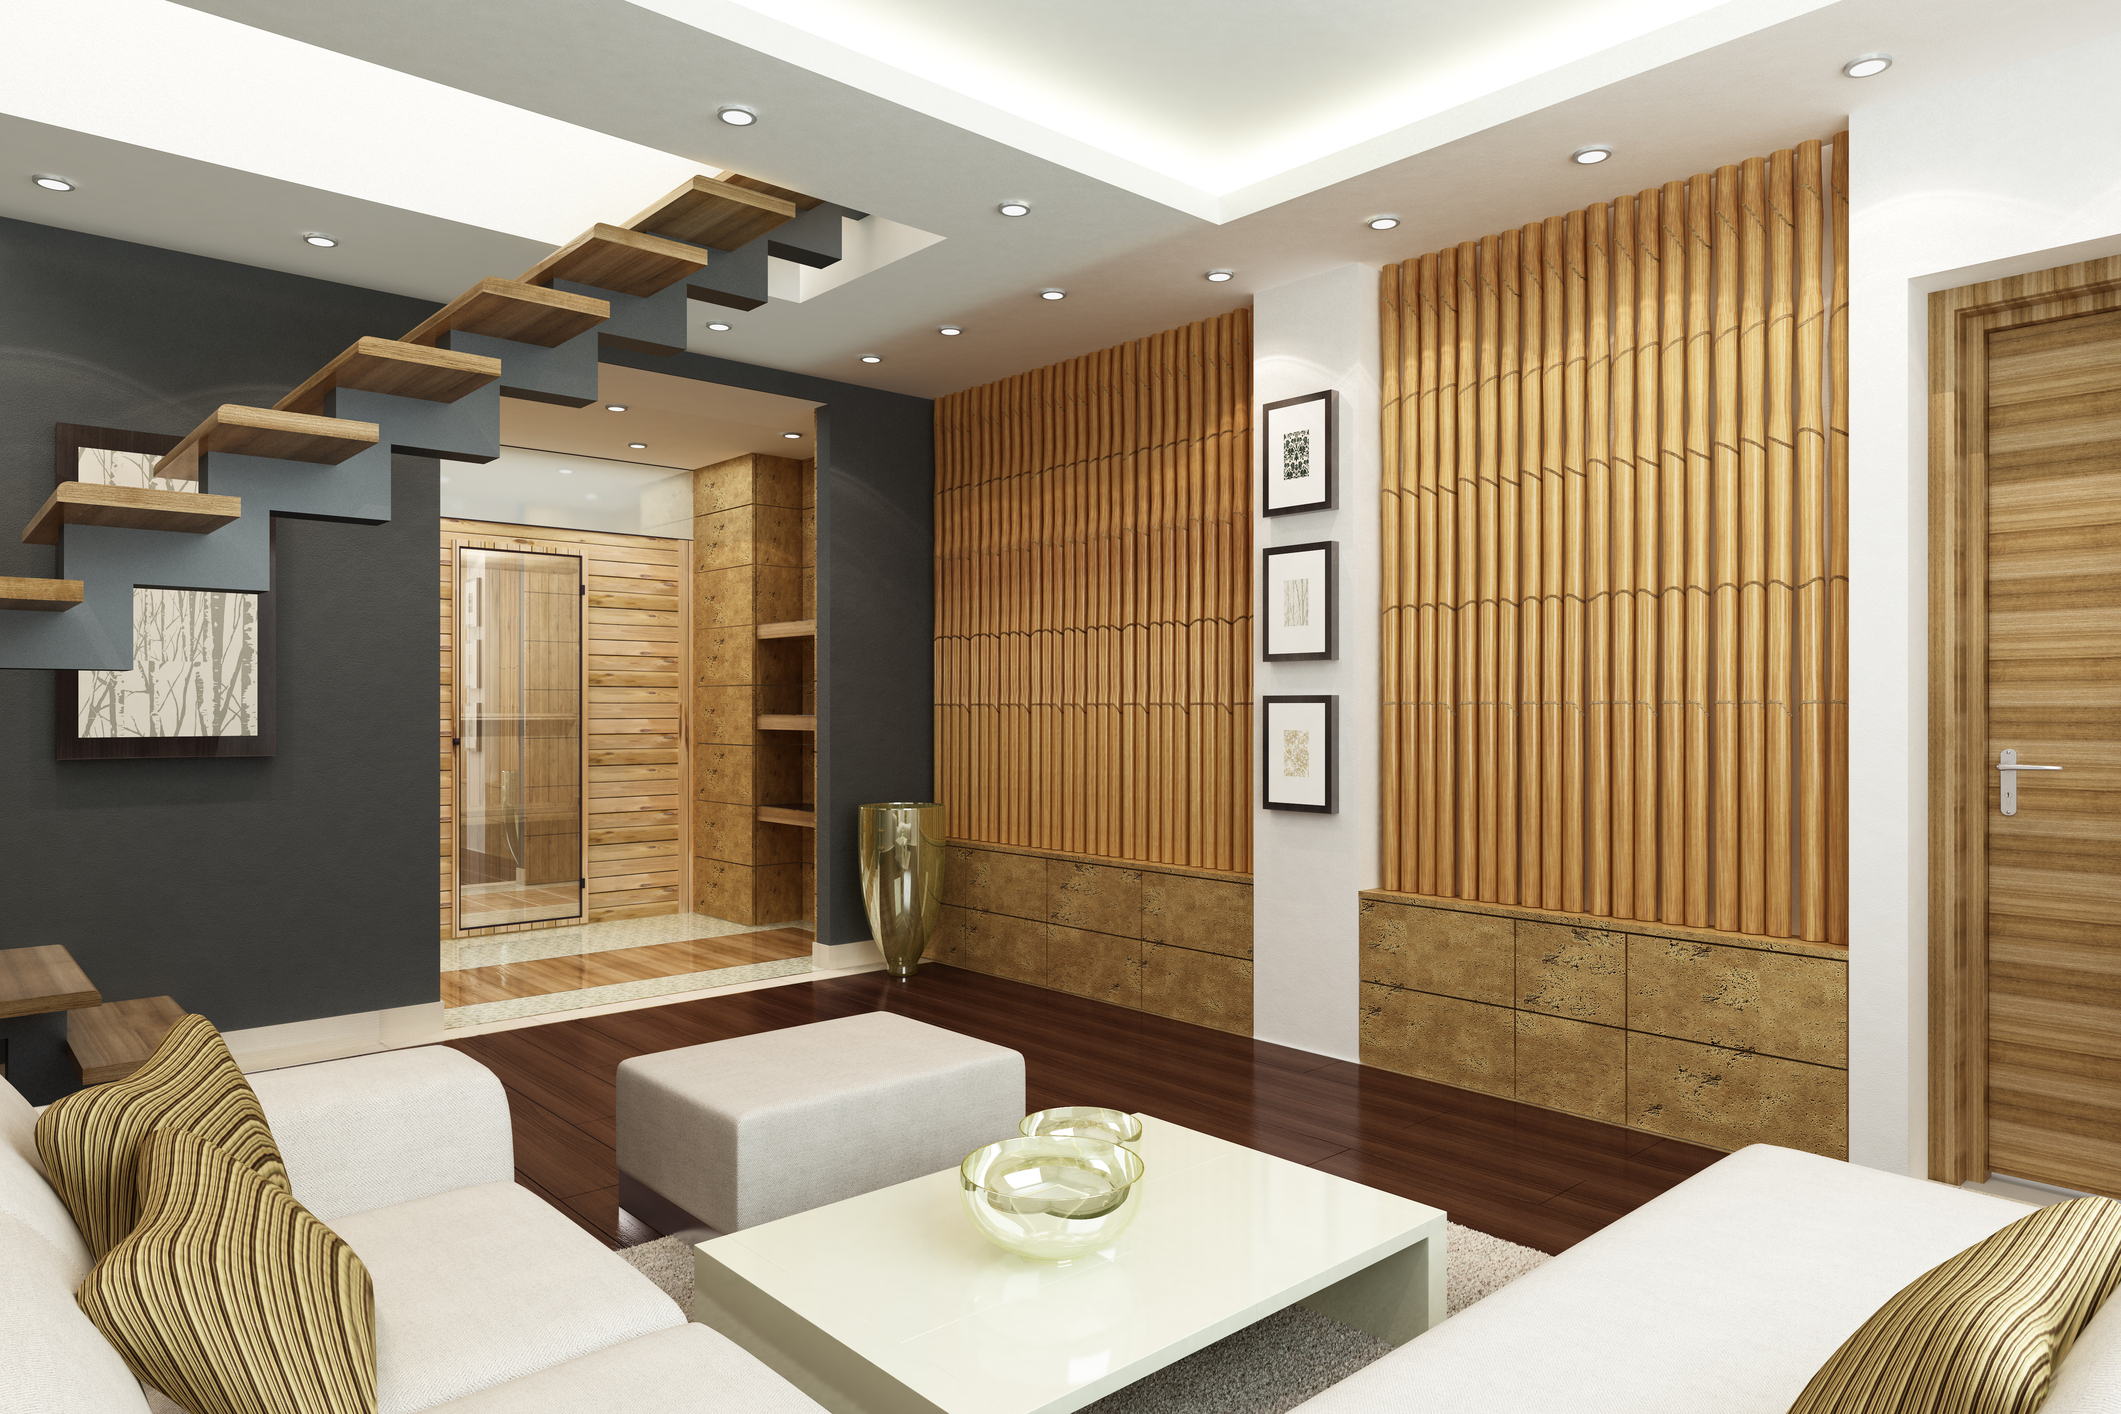 Interior Design Decorating Ideas Using Bamboo | LoveToKnow